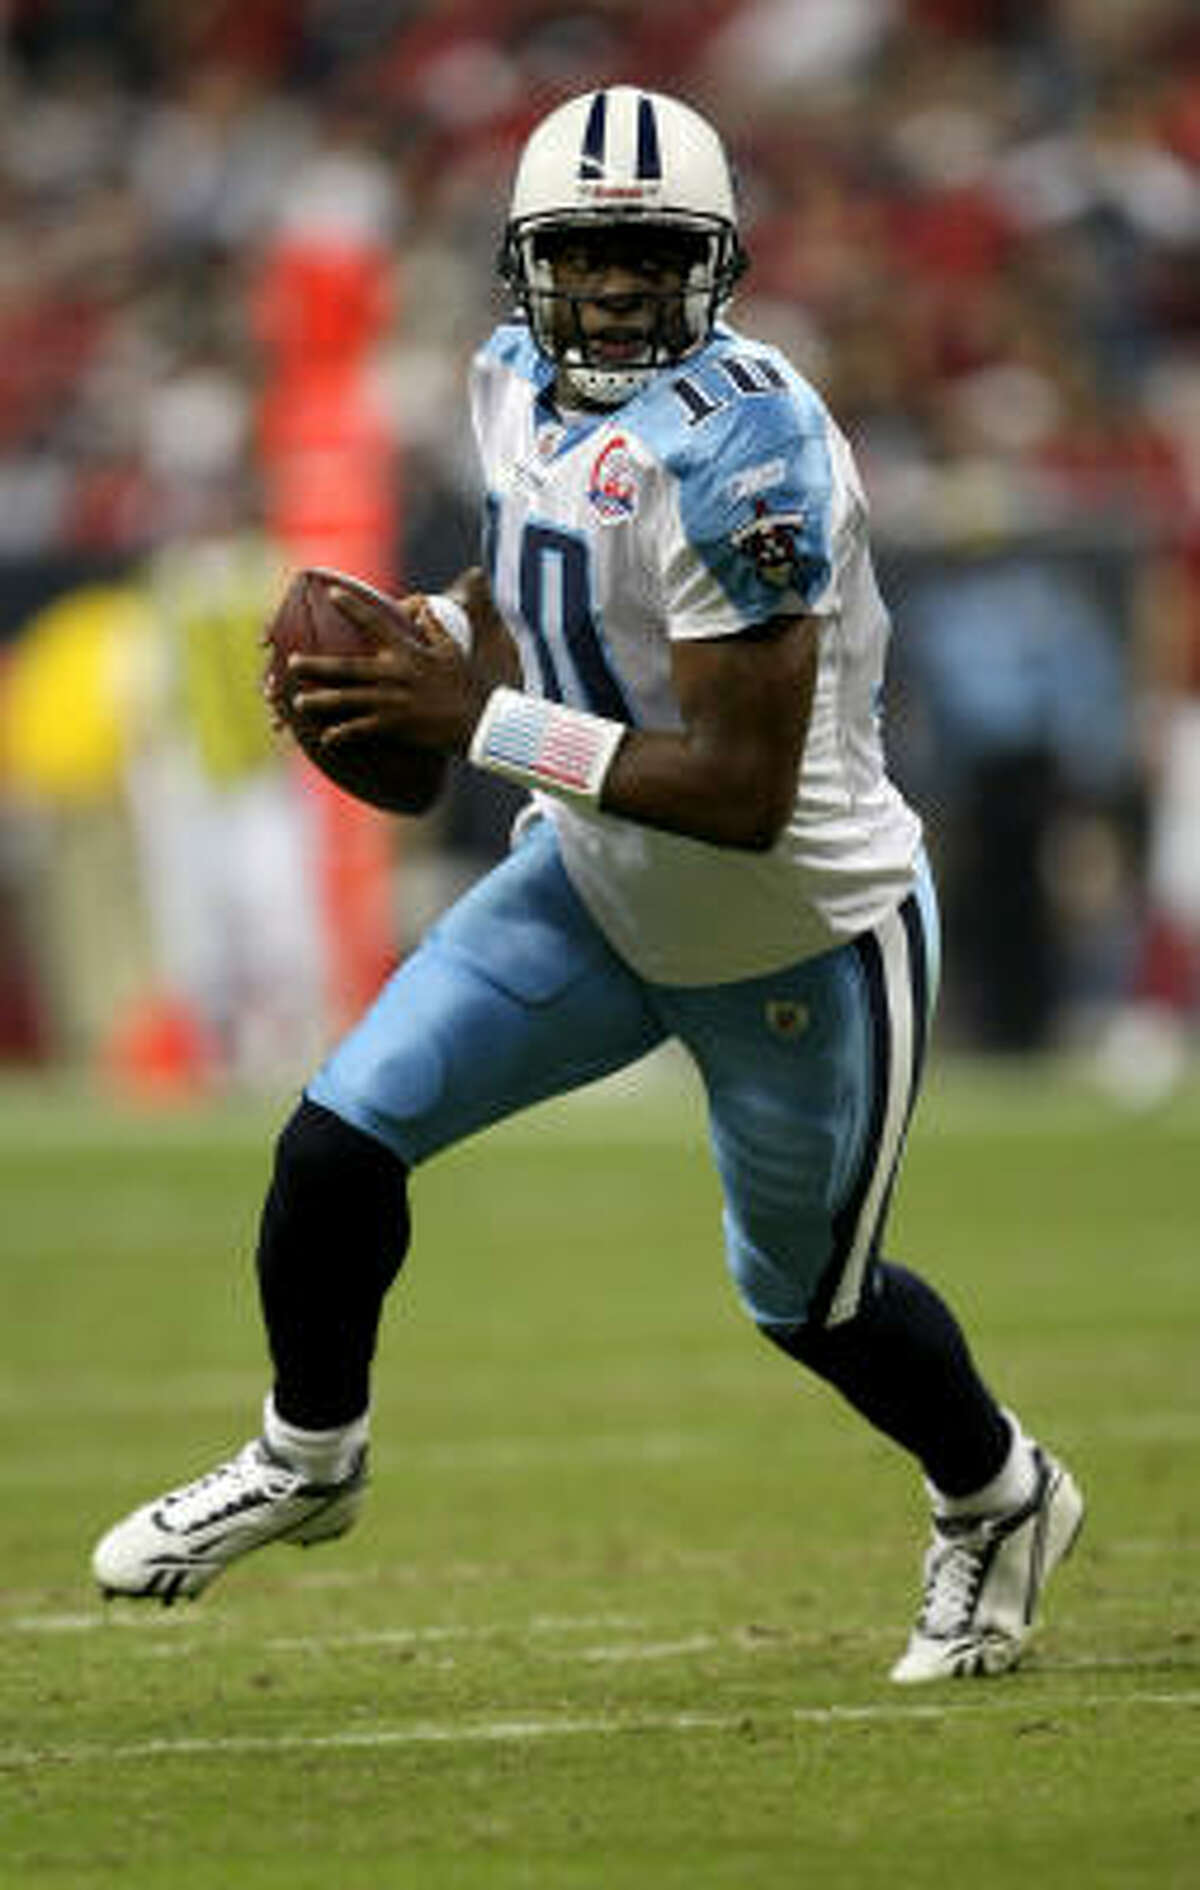 The Titans kept possession for more than 18 minutes in the second half.